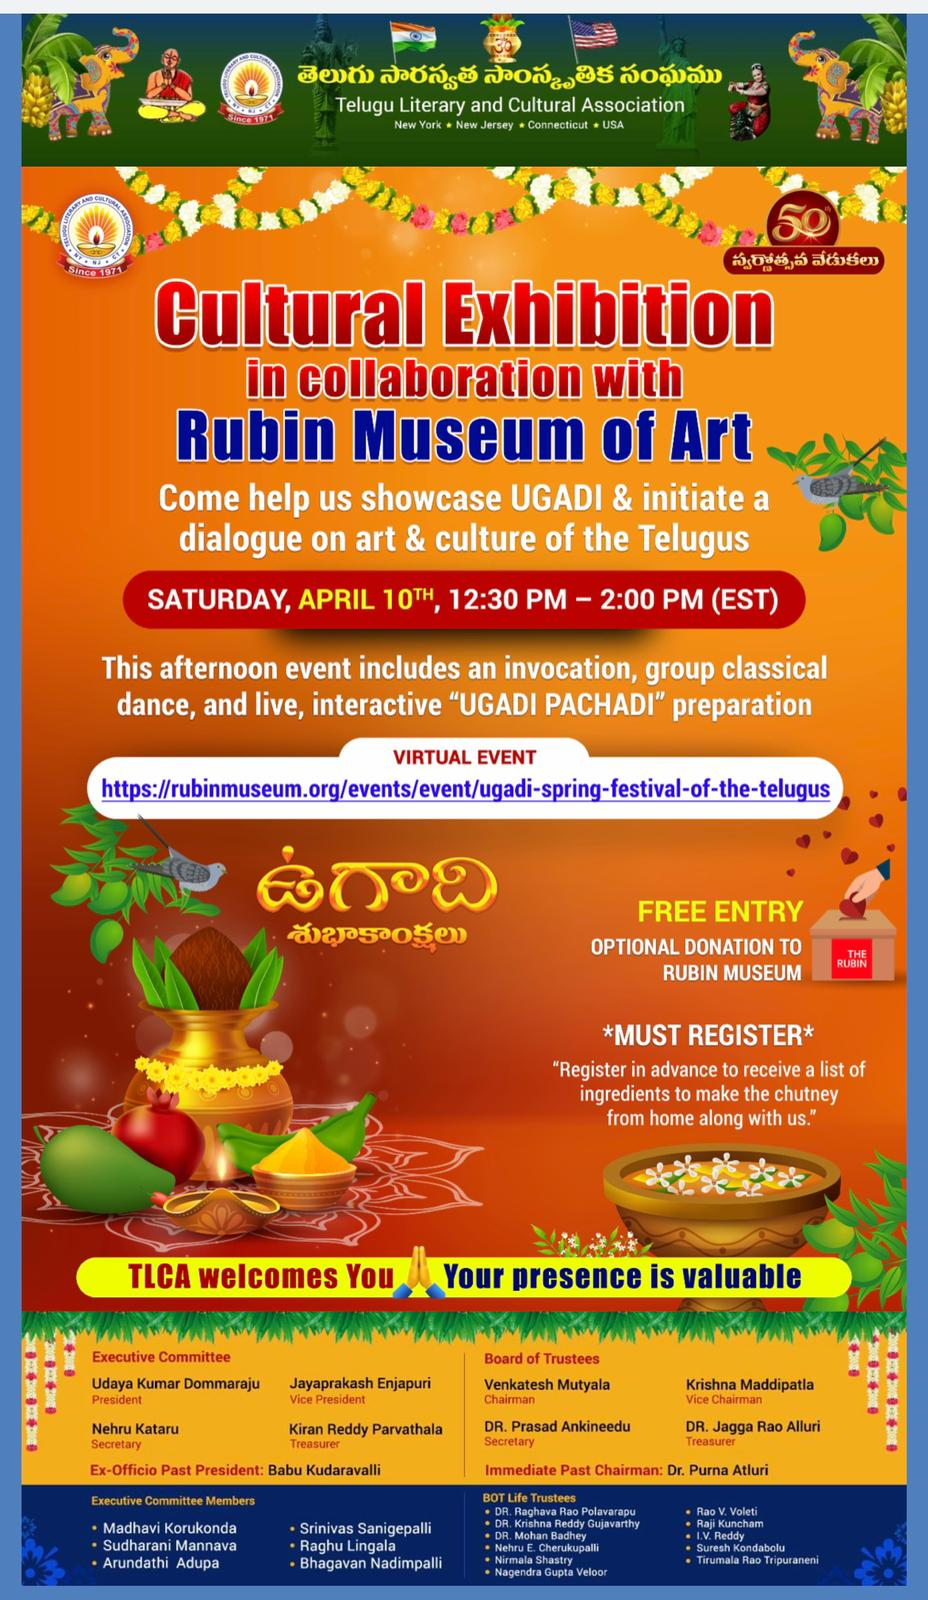 Cultural Exhibition in Collaboration with Rubin Museum of Art